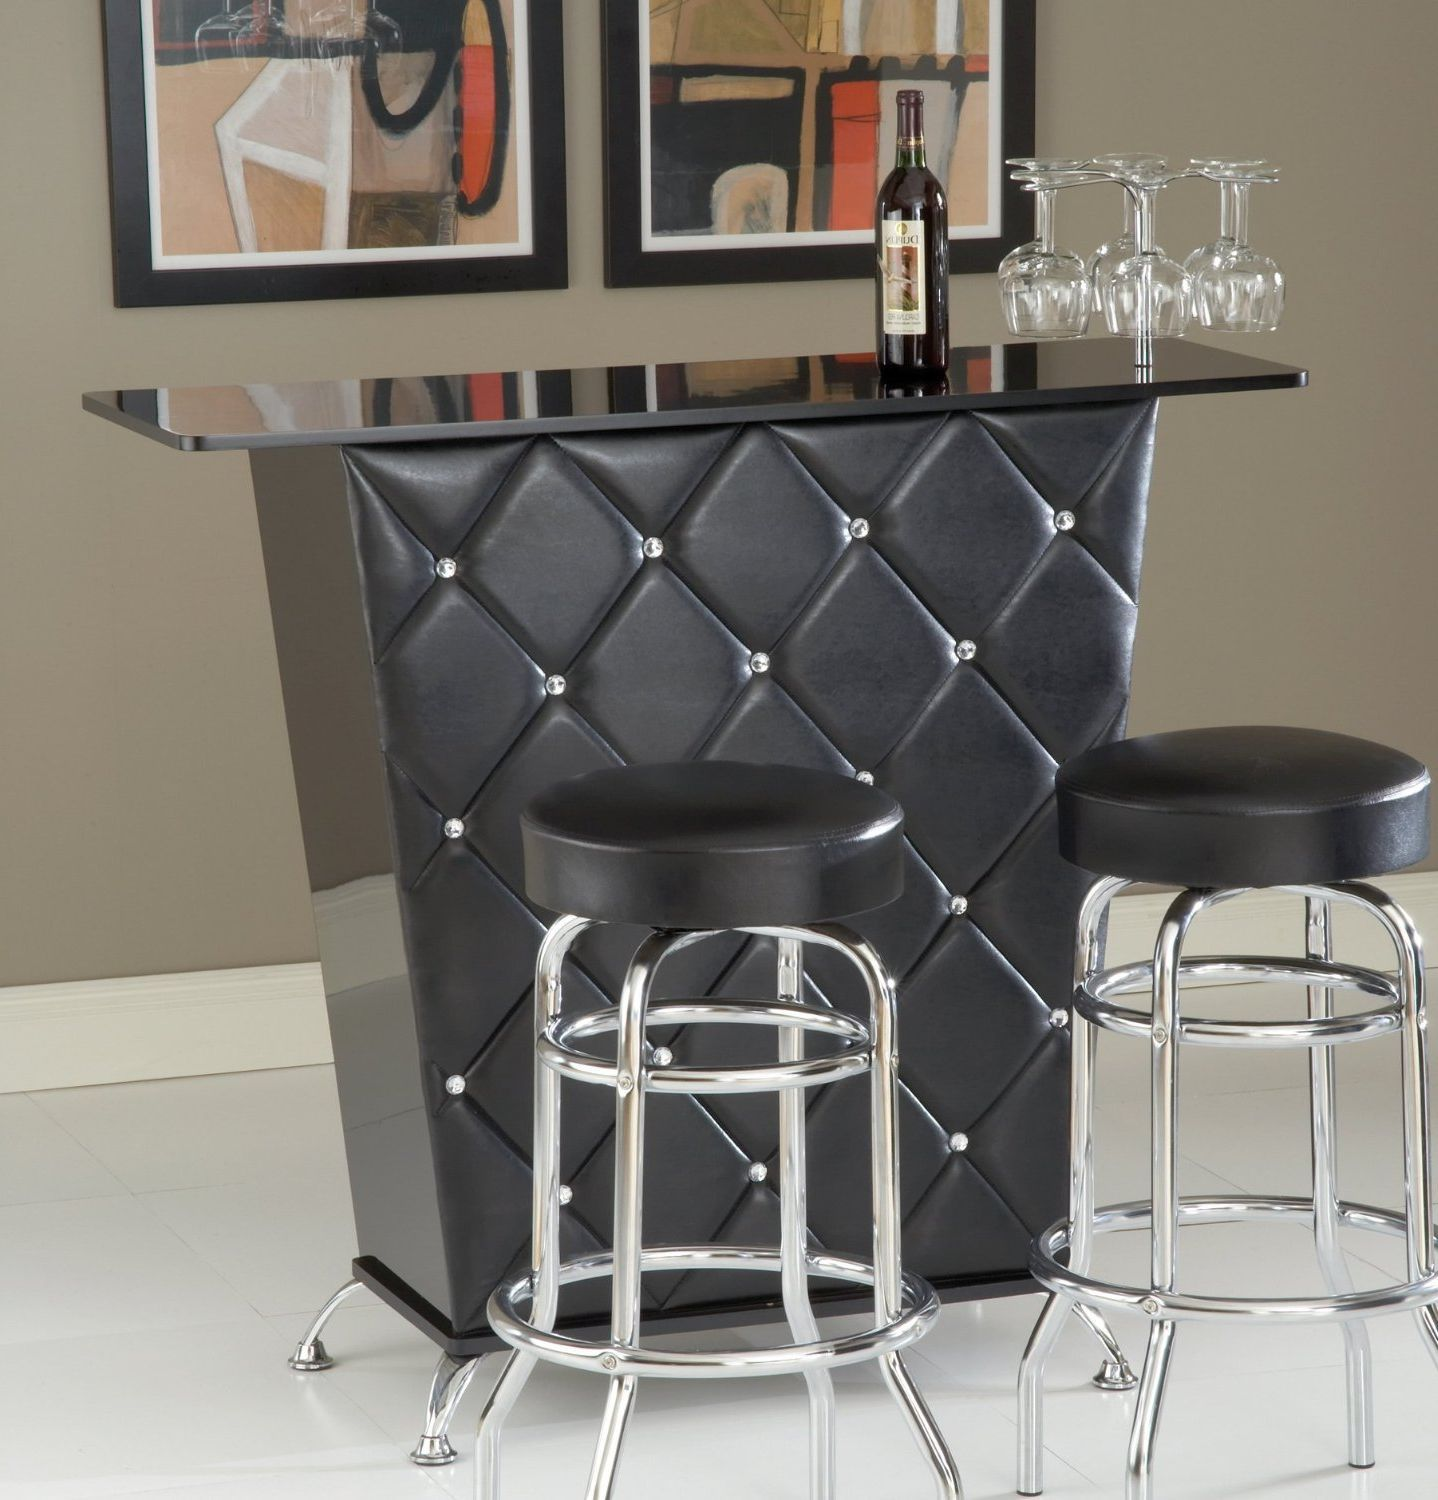 Portable Mini Bar Furniture Design Ideas Home Bar Chairs Stainless Leg Granite Living Room